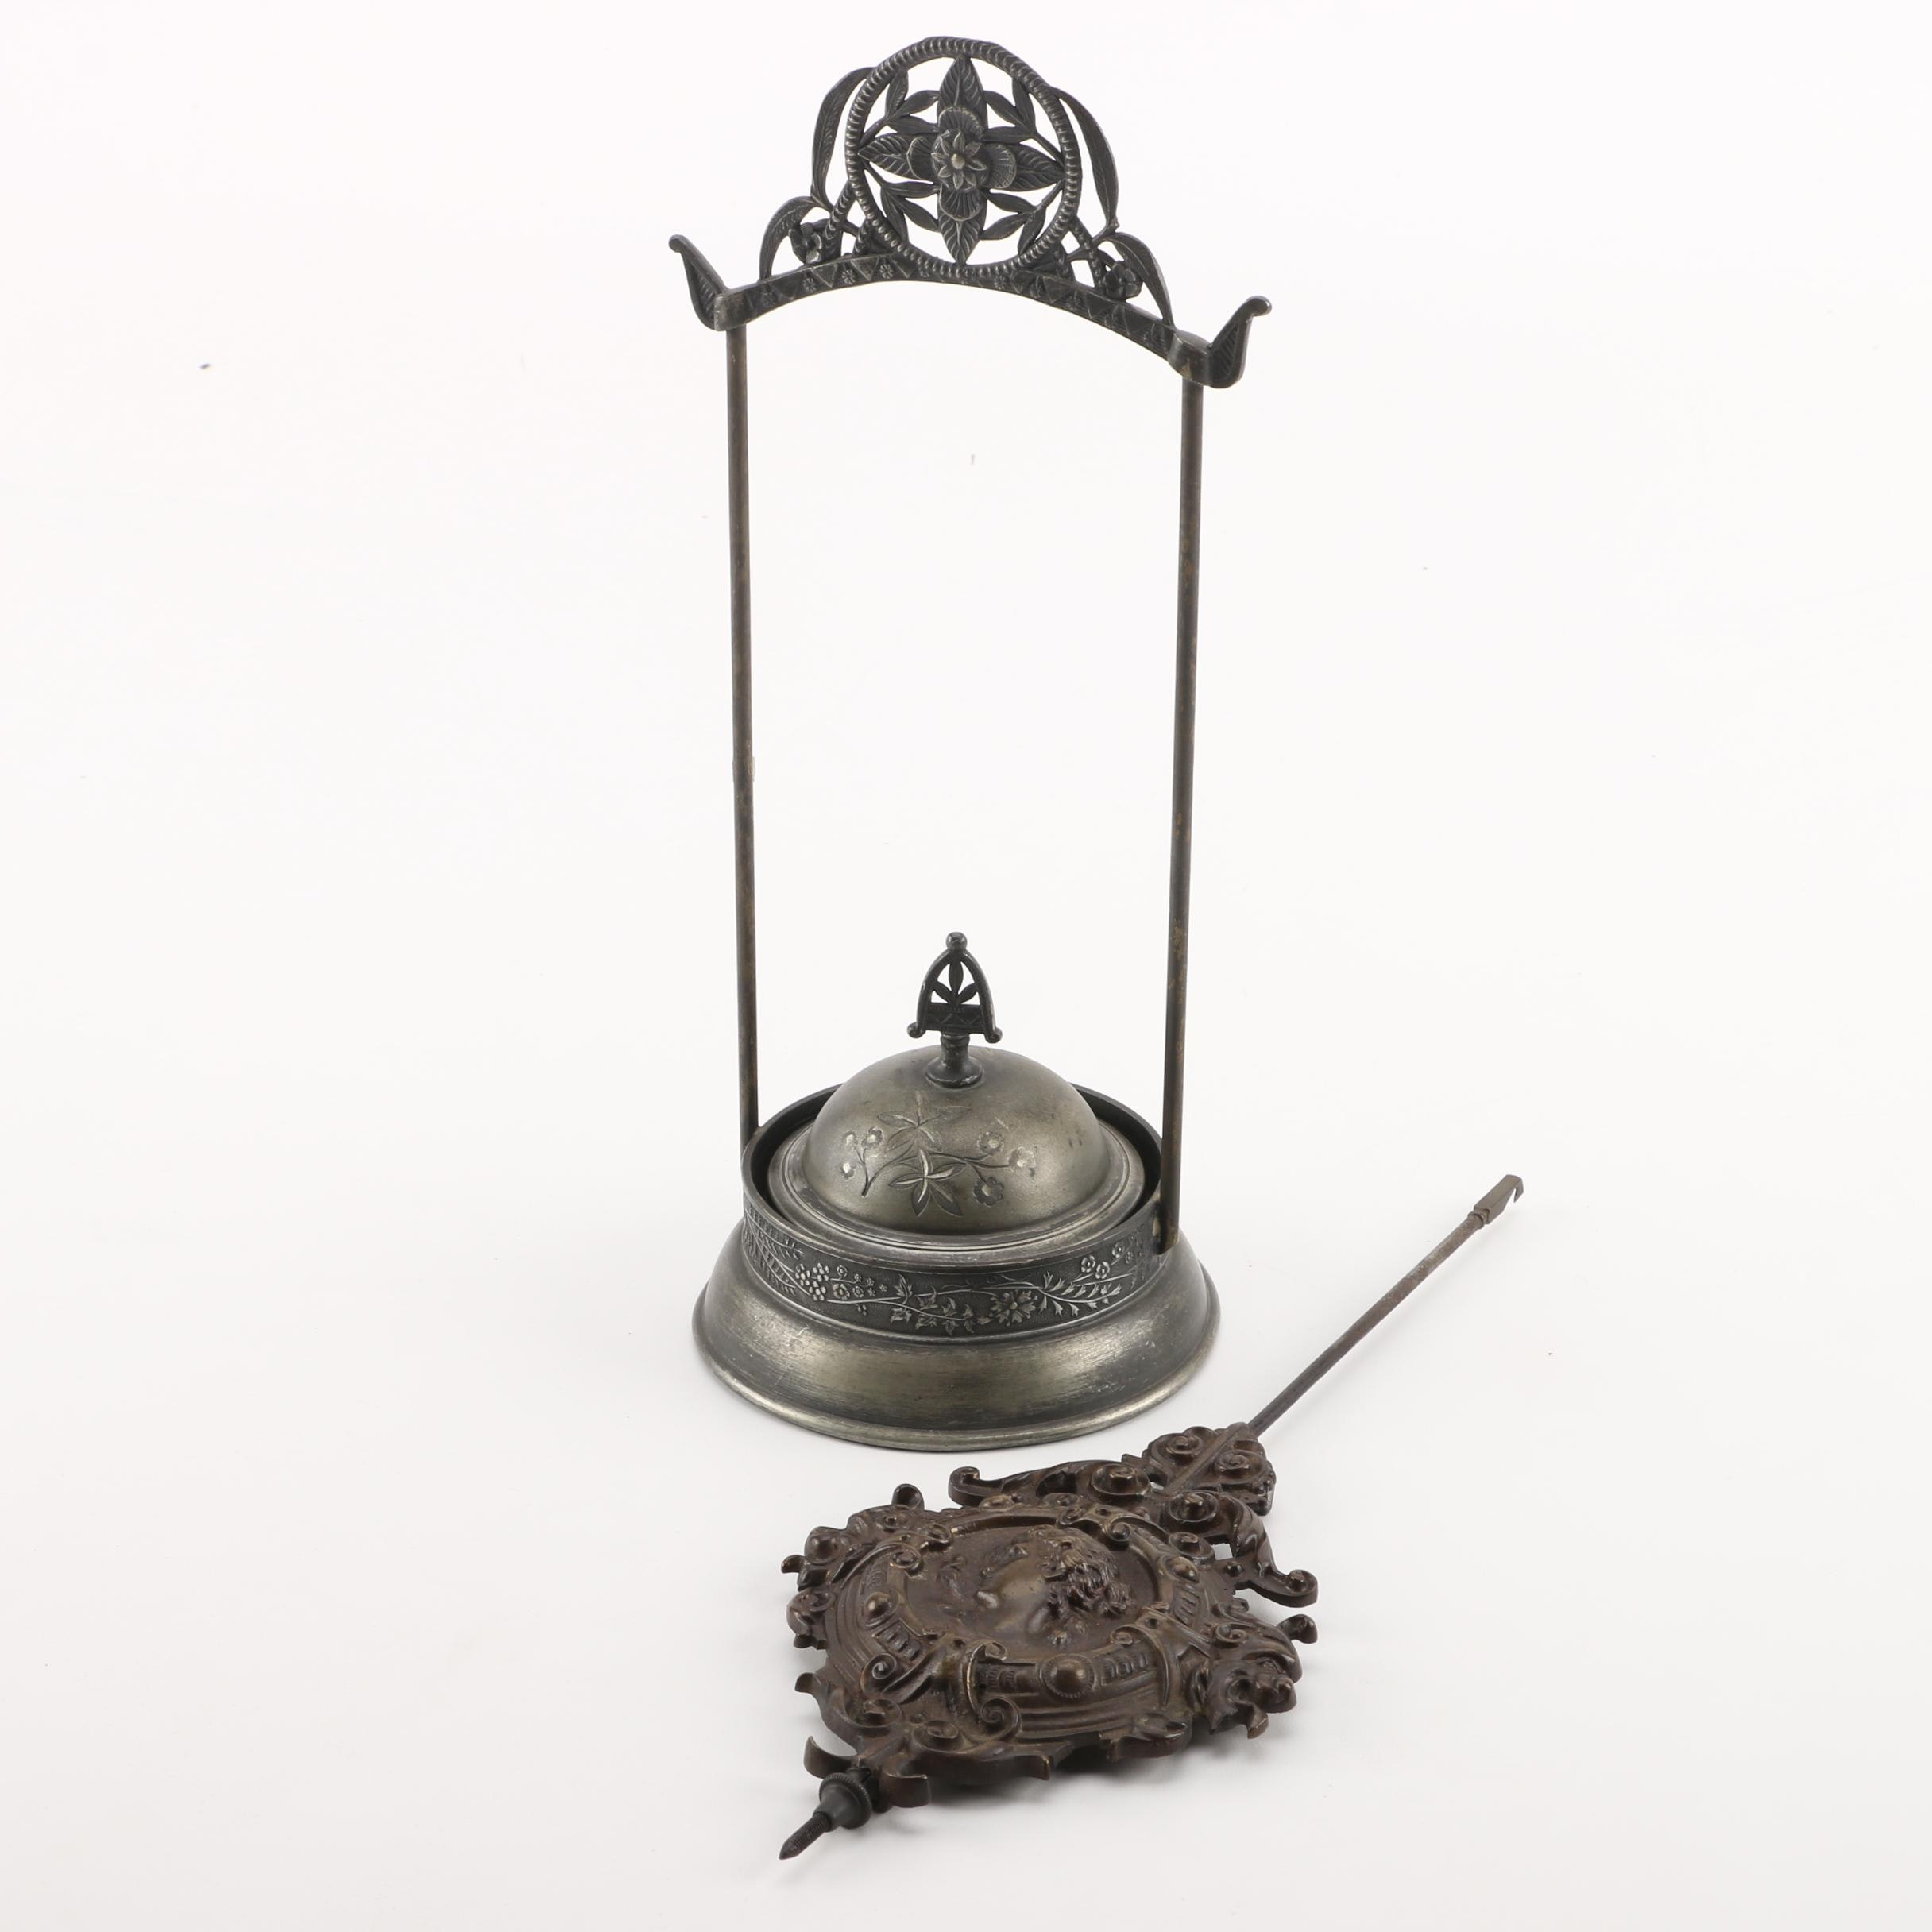 Vintage Silver-Plated Butter Warmer with Clock Pendulum